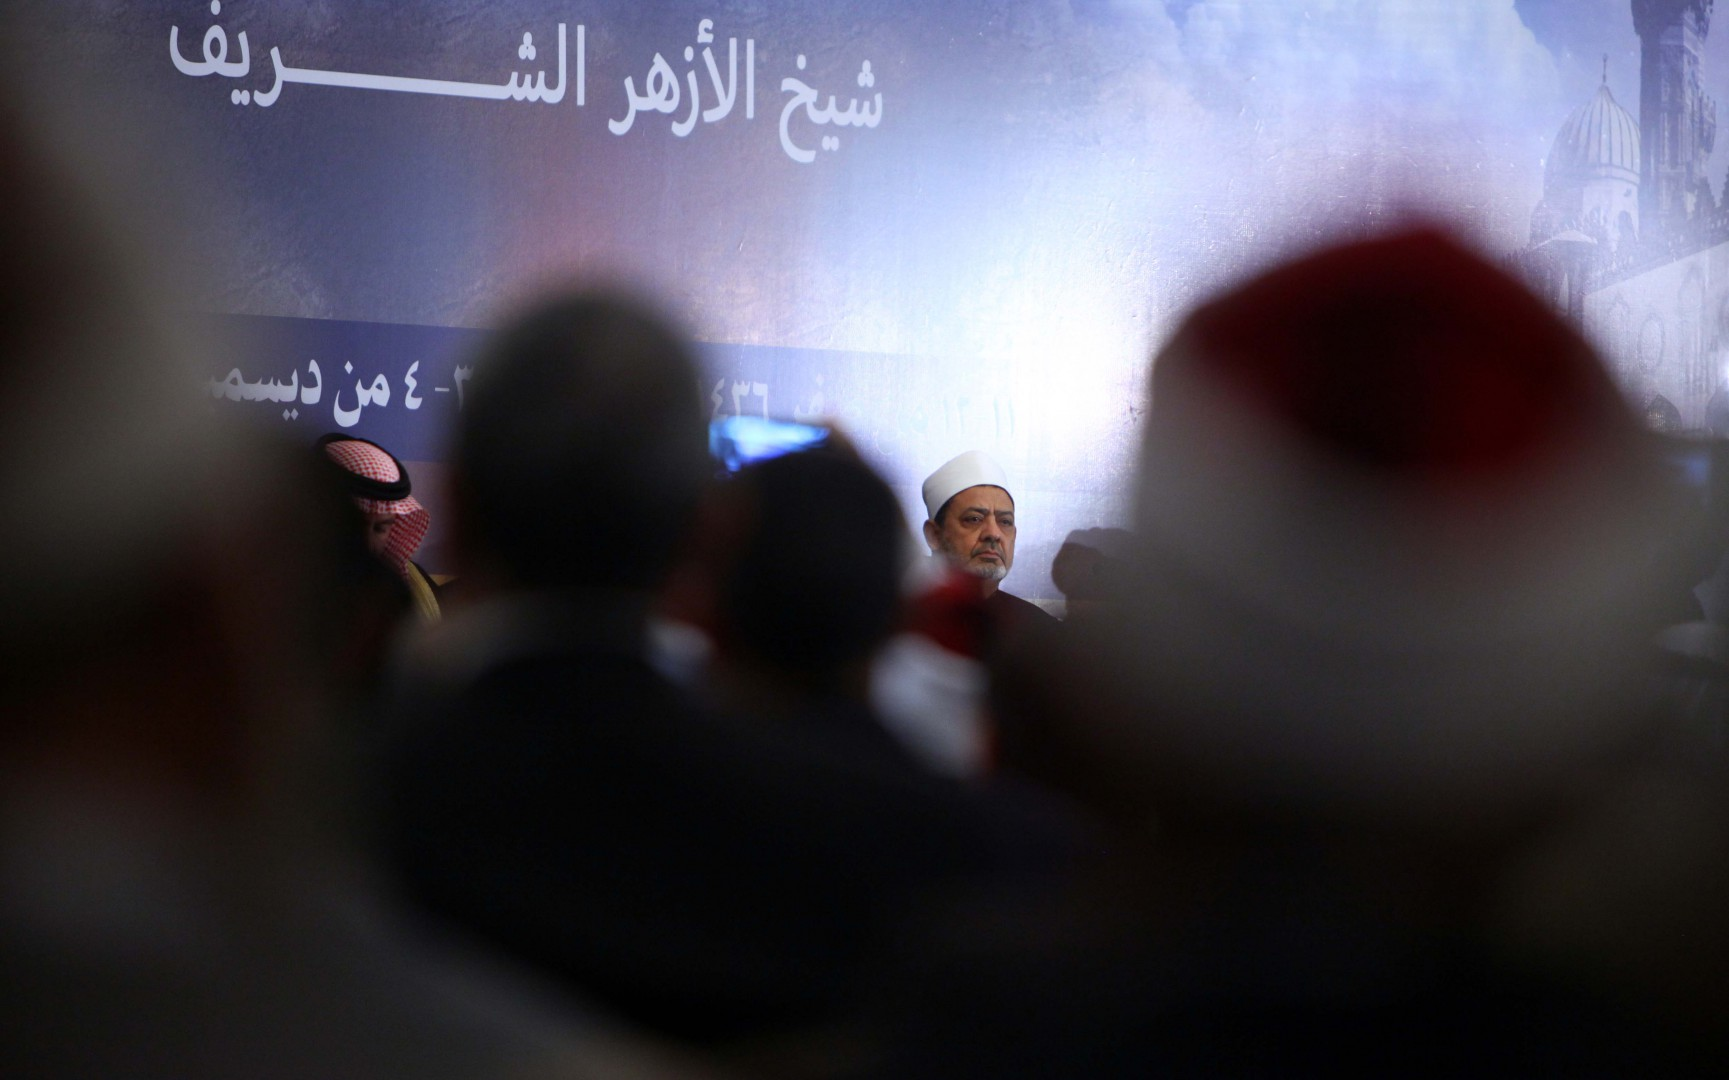 (141203) -- CAIRO, Dec. 3, 2014 (Xinhua) -- Egyptian Grand Imam of Al-Azhar Ahmed al-Tayeb attend a conference for confronting extremism and terrorism in Cairo, Egypt, on Dec. 3, 2014. The head of al-Azhar, Egypt's top Muslim body and the world's center of Sunni Muslim learning, condemned on Wednesday the extremism of Islamic groups, especially the Islamic State group. (Xinhua/Ahmed Gomaa)